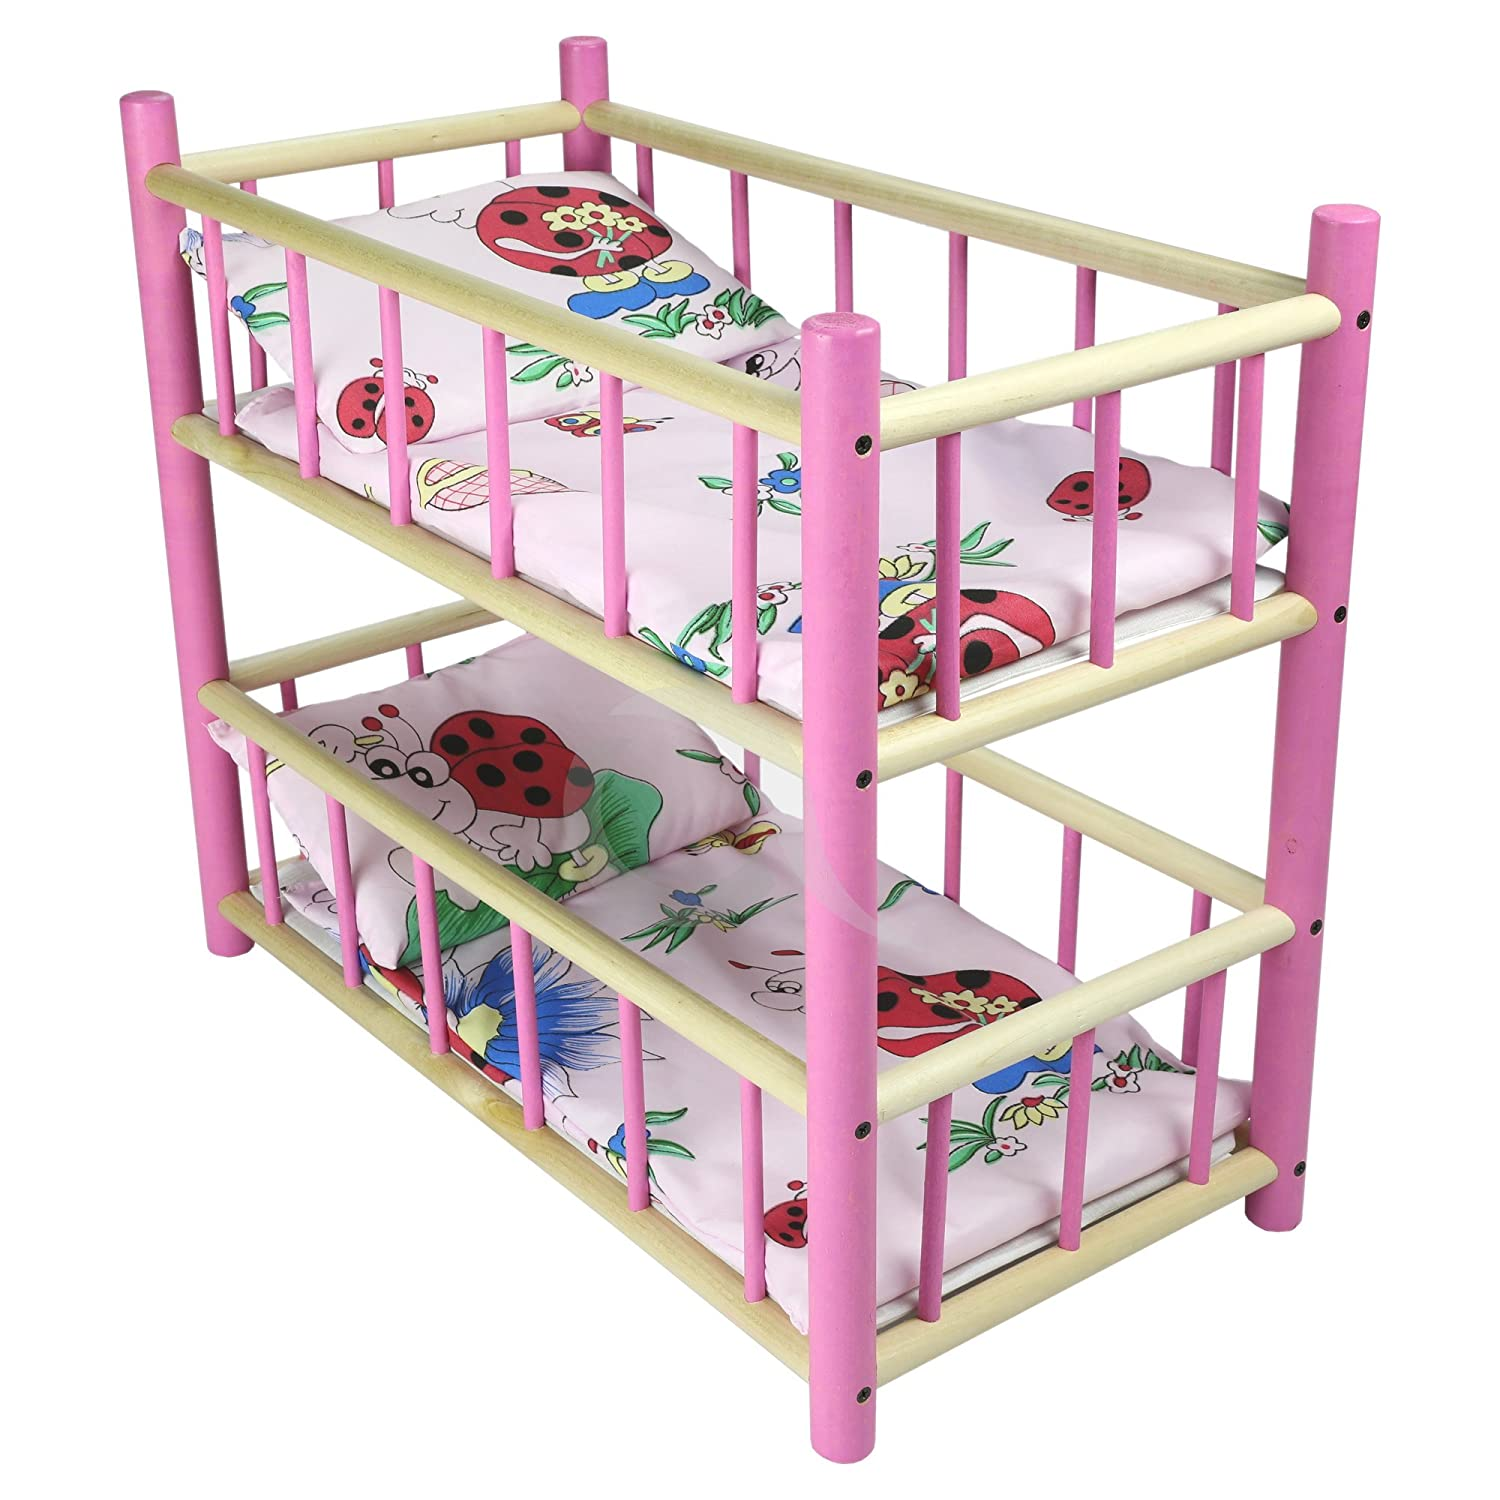 ladybird NEW LARGE WOODEN PINK BUNK BED COT CRIB DOLLS Xmas TOY Fits Up to 50cm 19 Doll